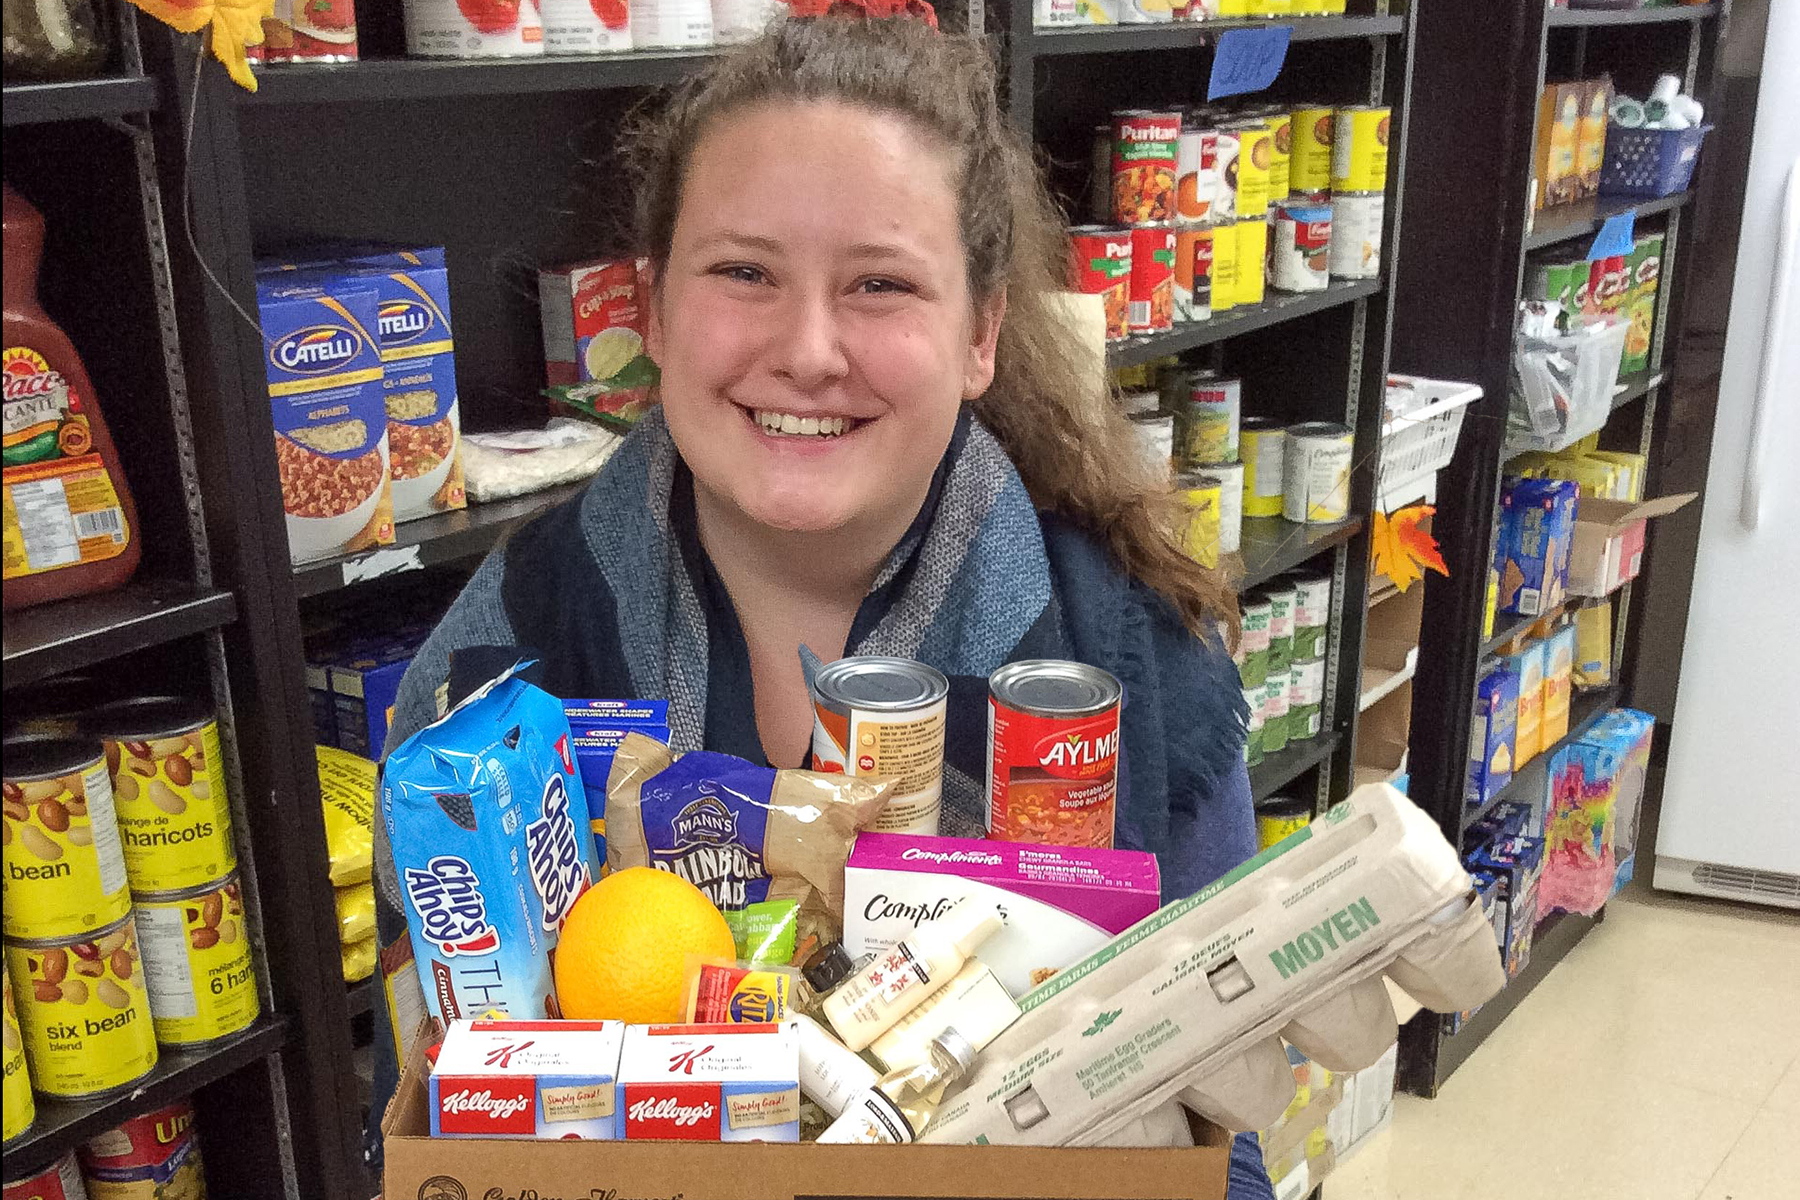 Student Food Resource Centre - Running short on food? Don't stress- stop by and stock up on food and resources. Located through the back of Mackinnon Hall, our free, confidential, food service is open Monday - Saturday afternoons. Come check us out!